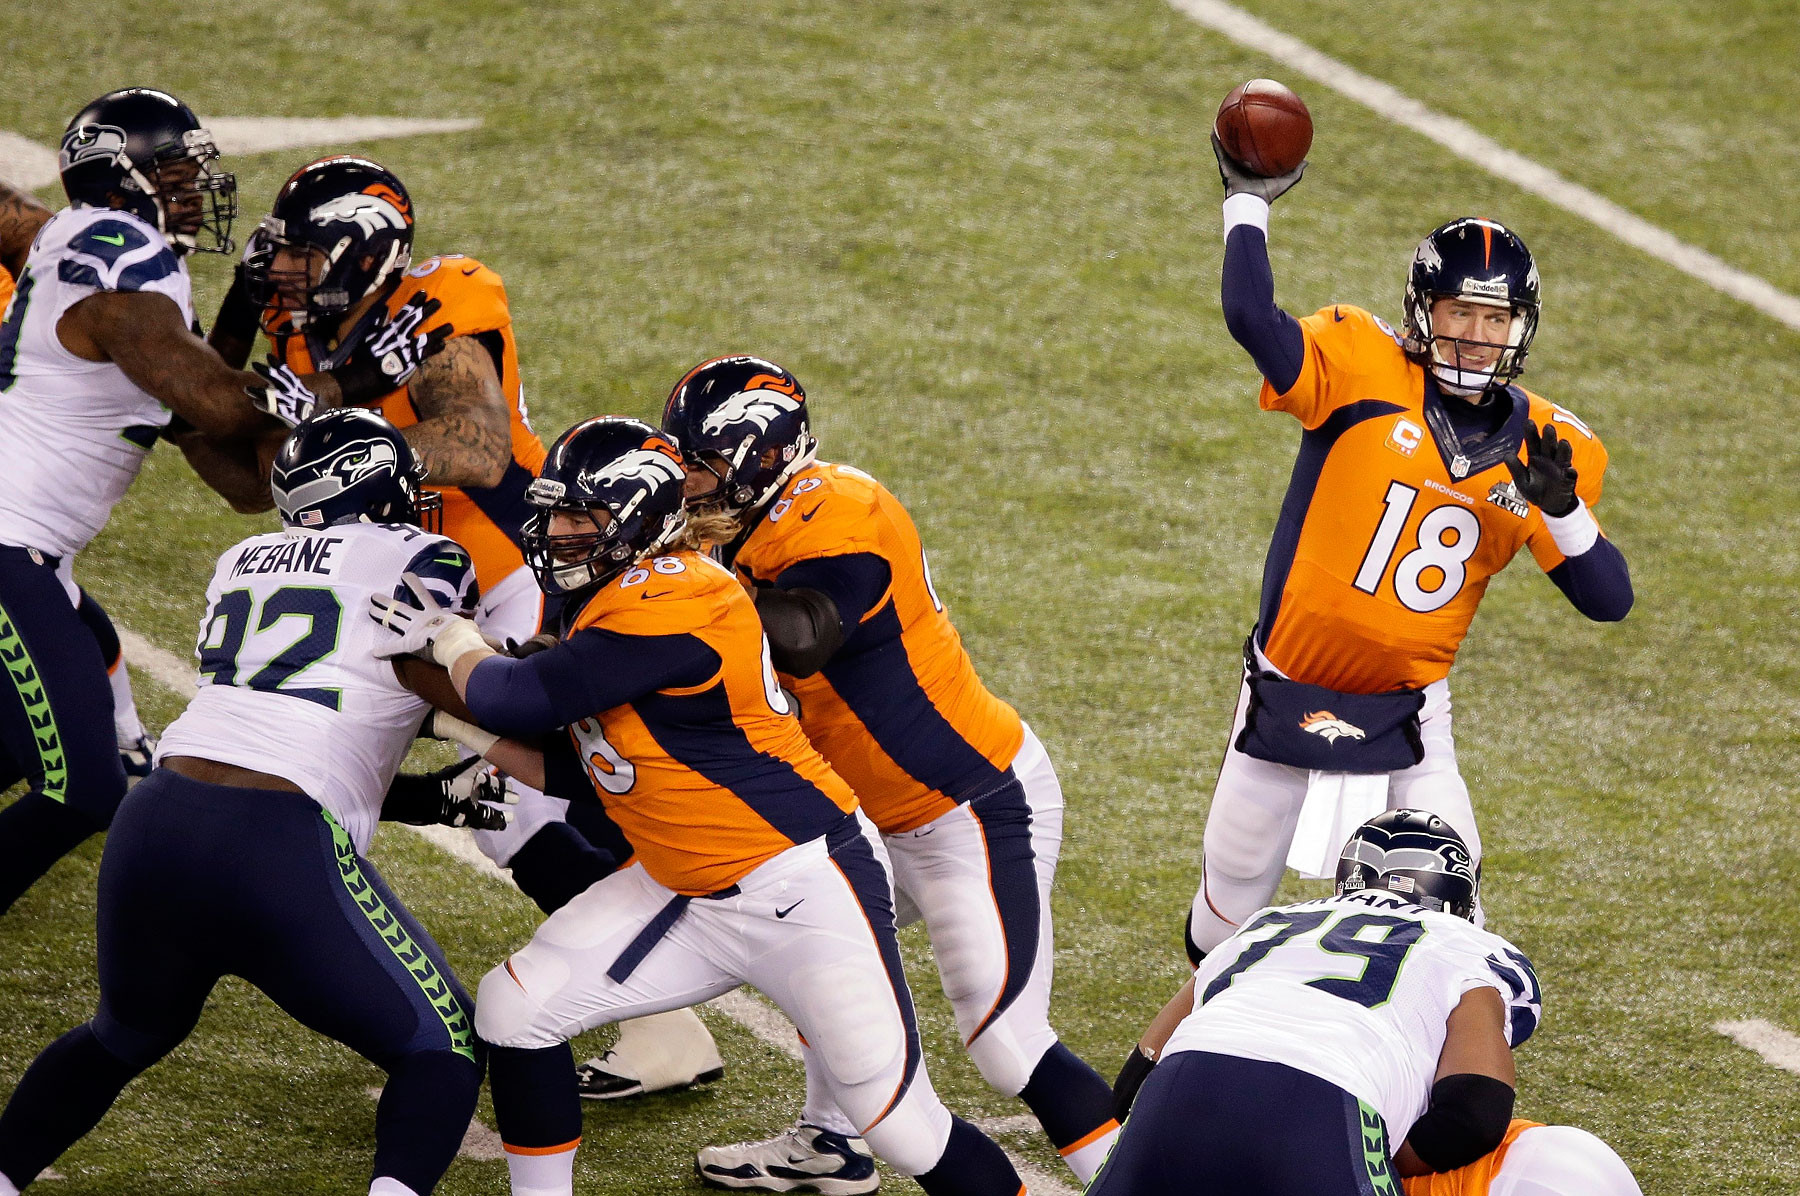 Denver Broncos' Peyton Manning throws a pass during the first half.